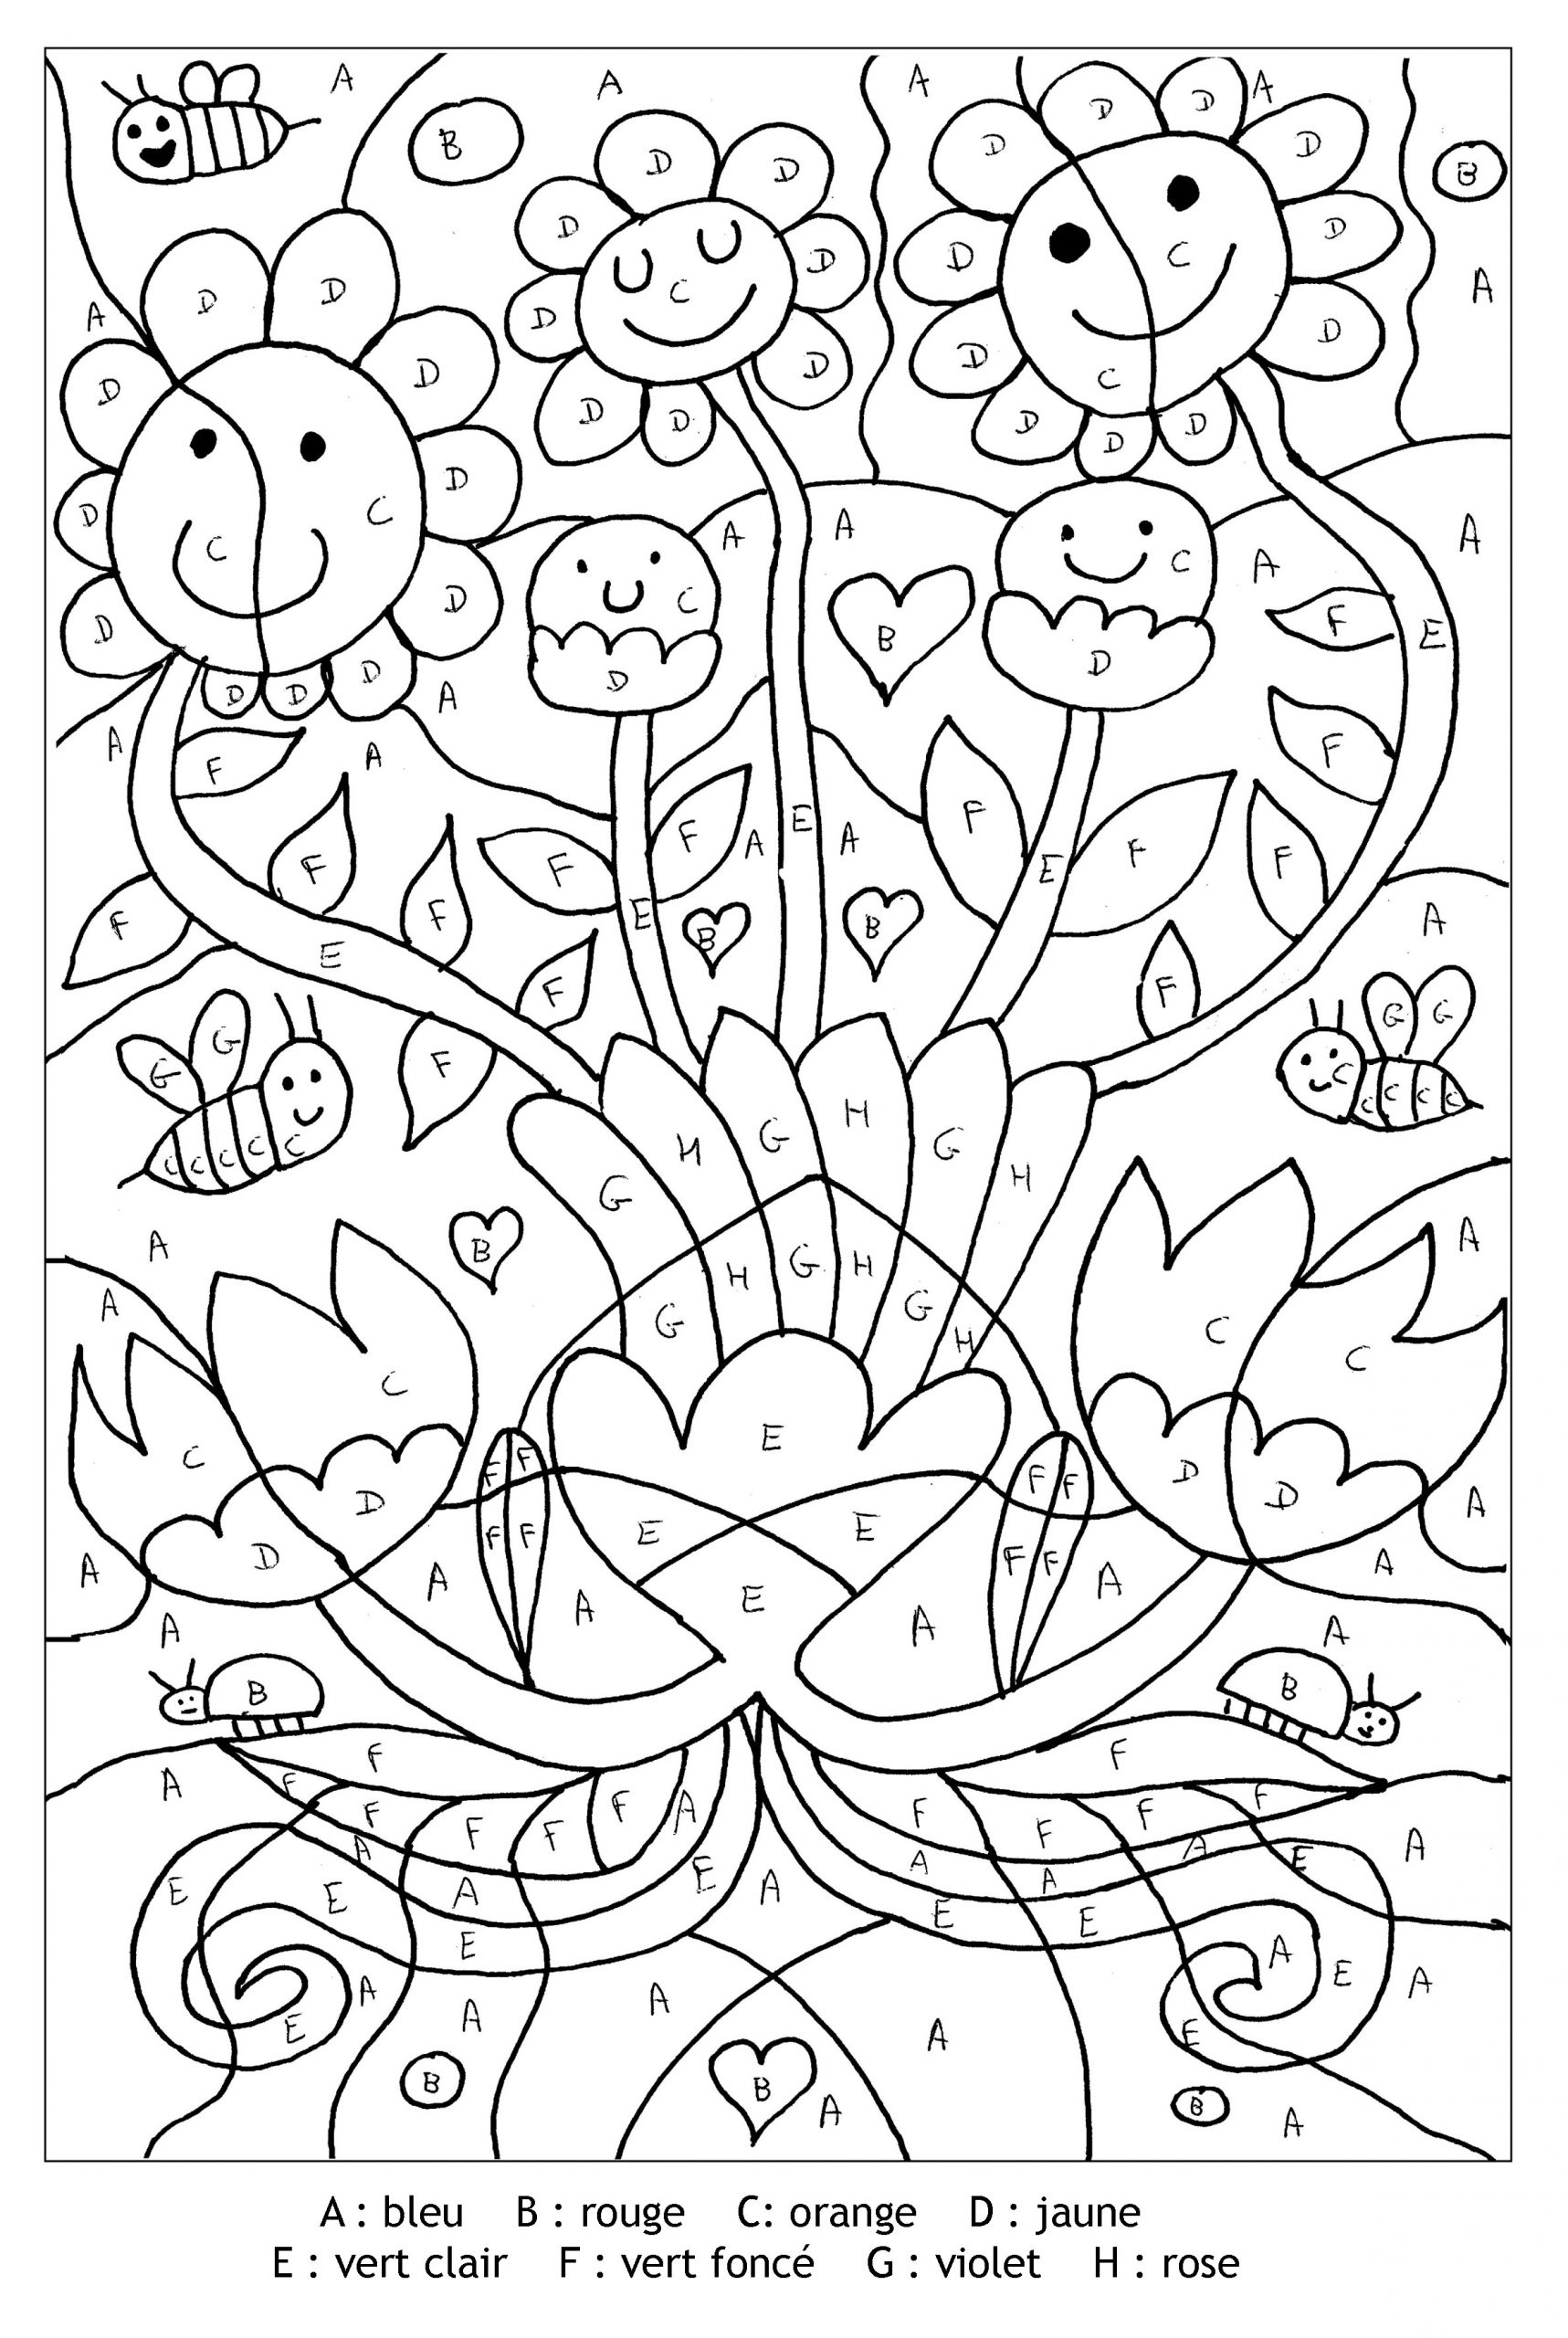 Magic Coloring #142 (Educational) – Printable Coloring Pages concernant Coloriage Magique Alphabet Cp